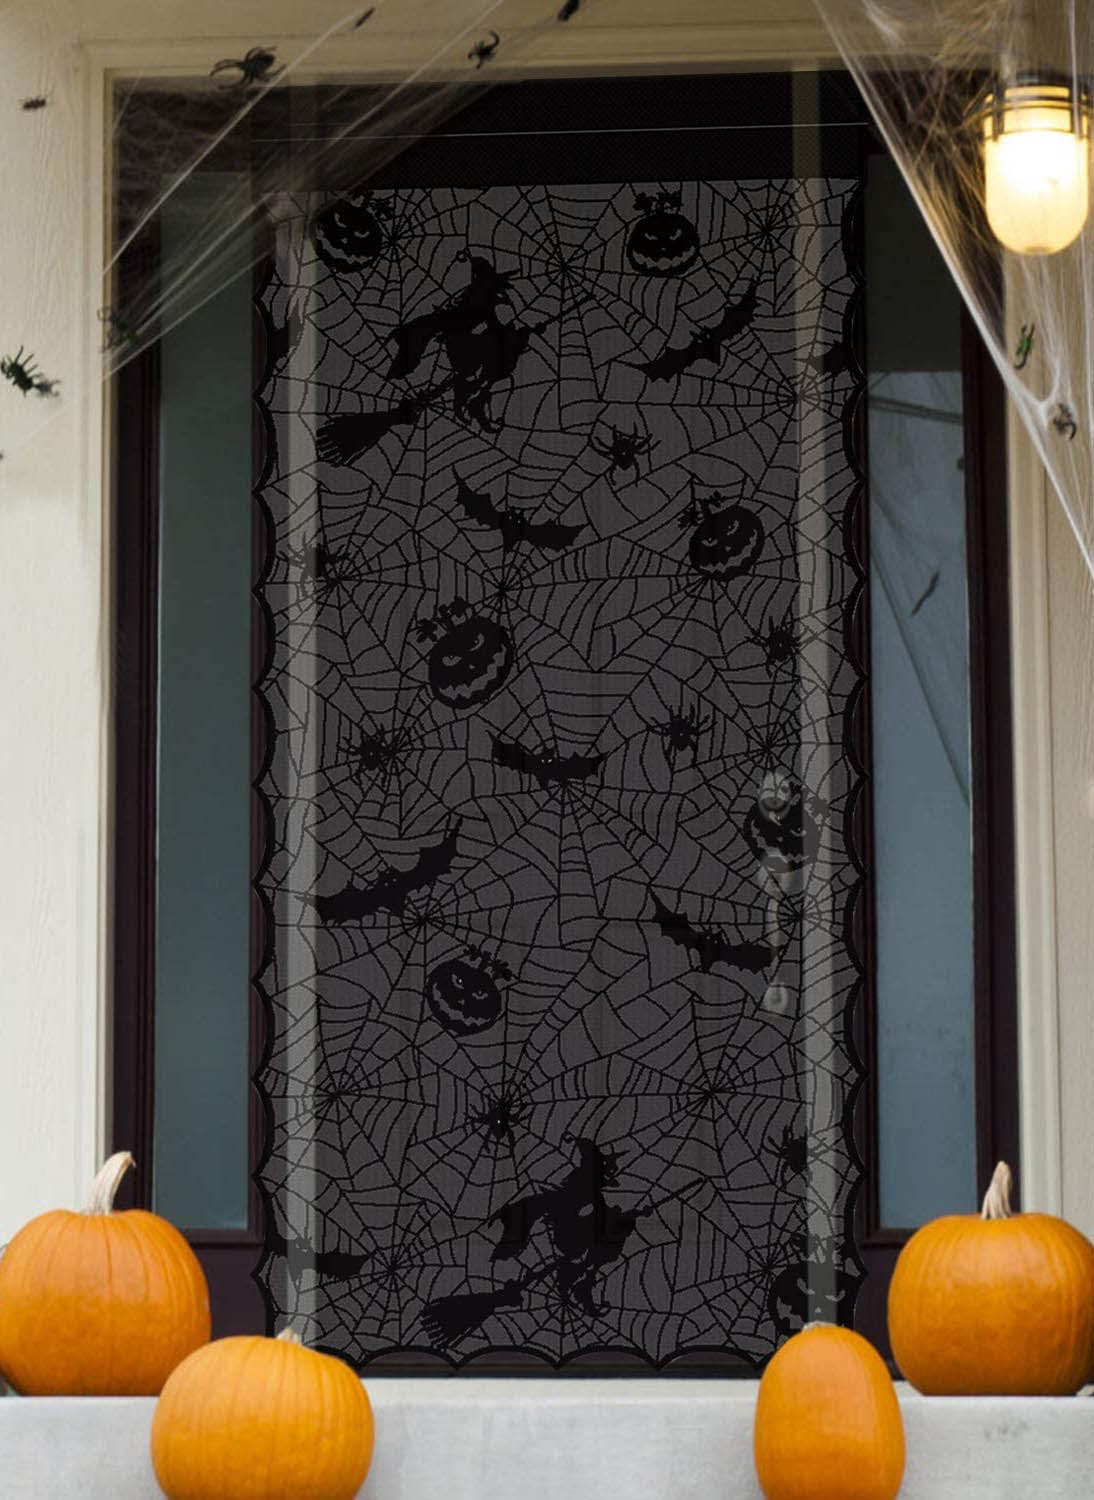 Spooky Door Decorations For Halloween  from purewows3.imgix.net